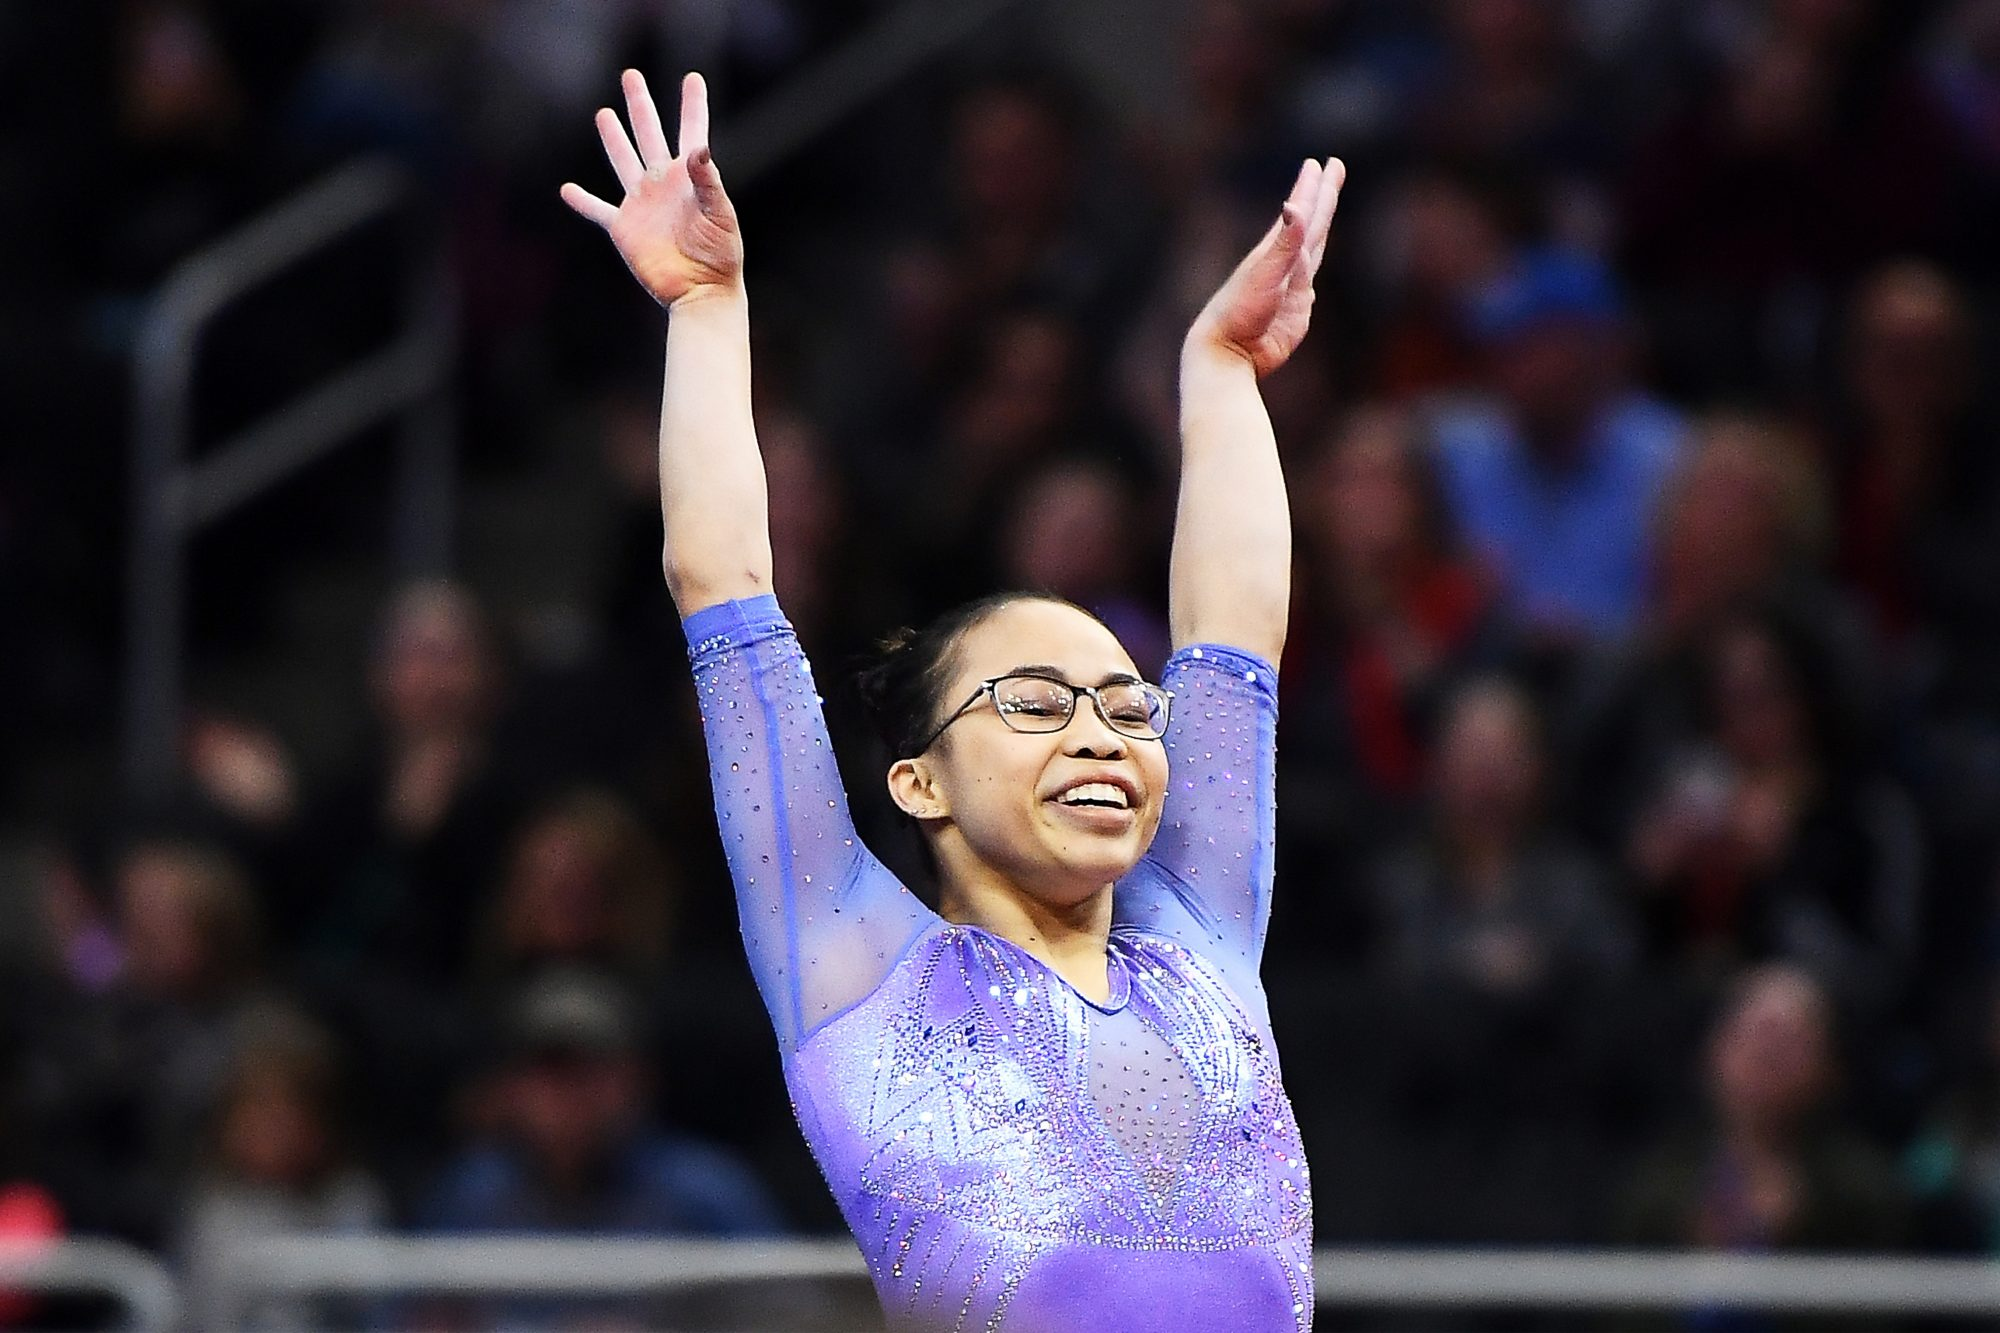 World Champion Gymnast Morgan Hurd is the Definition of Determination and Resilience